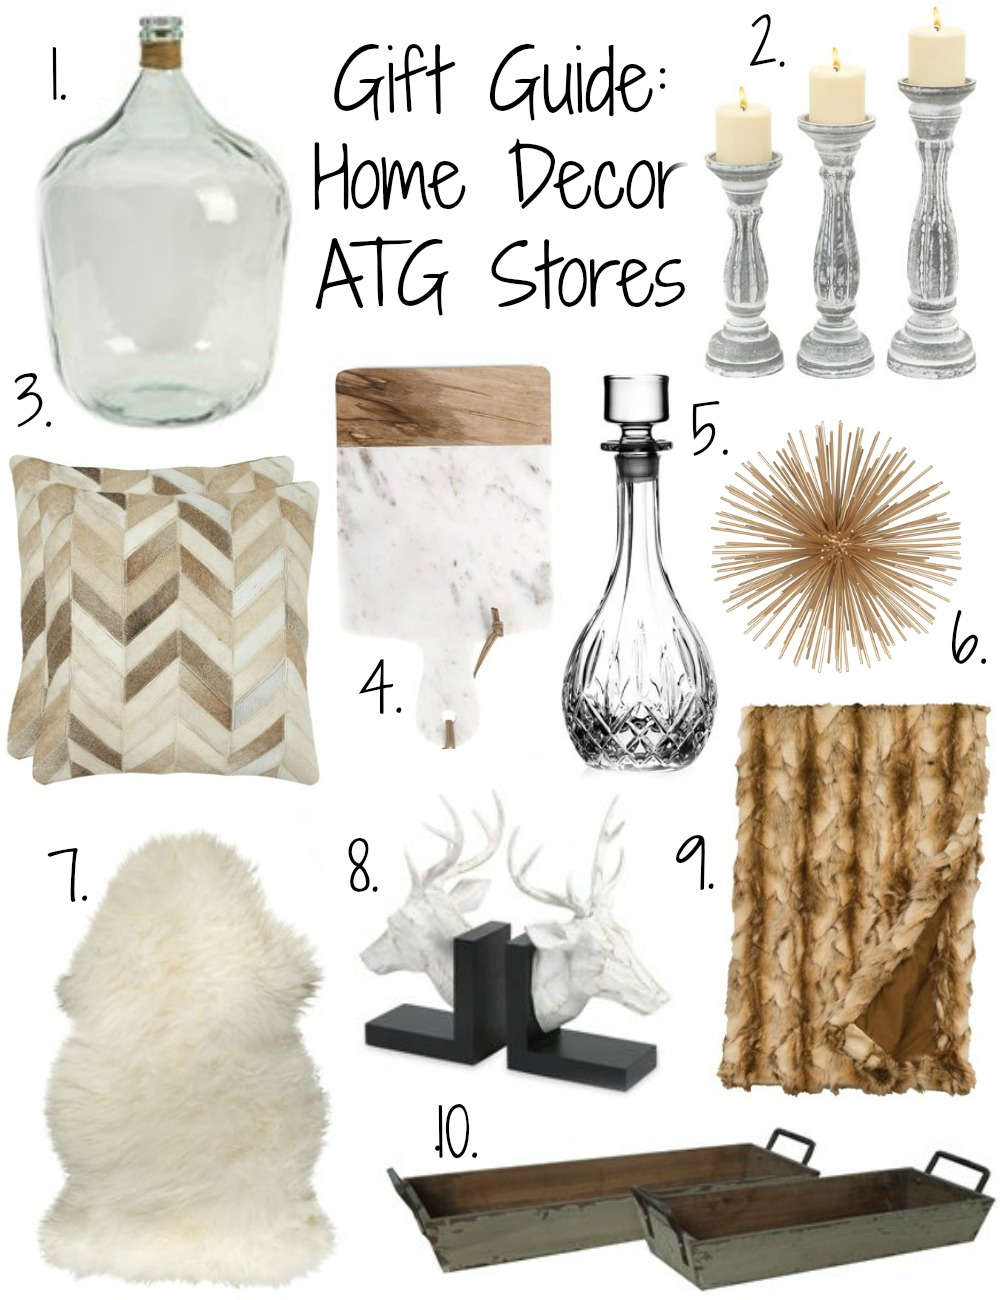 atg-stores-gift-guide